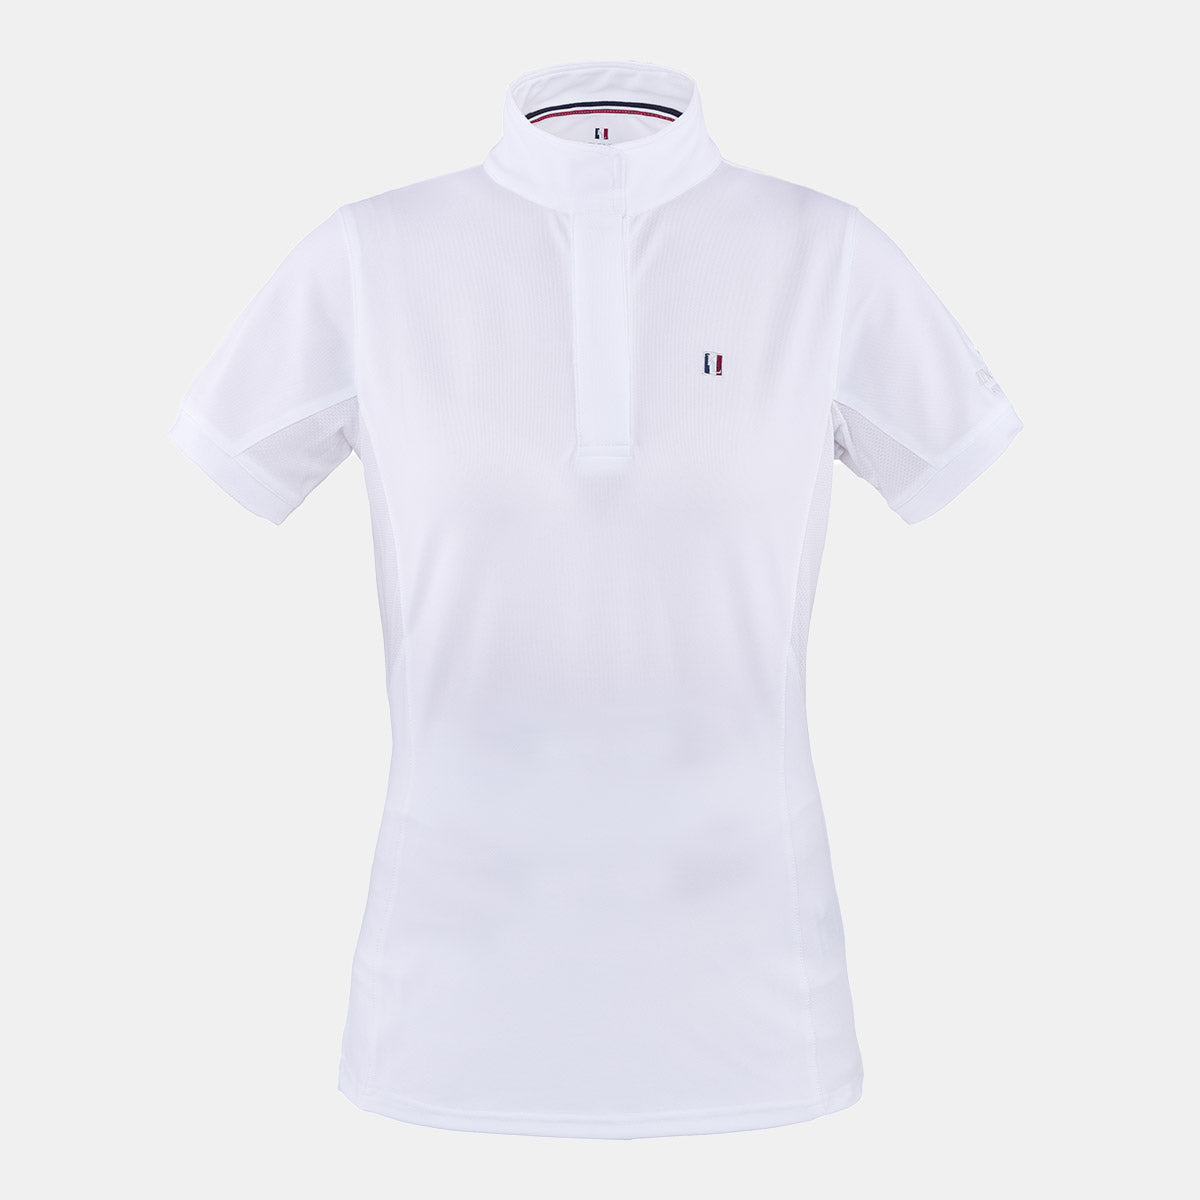 Kingsland Classic Short Sleeve Show Shirt in White